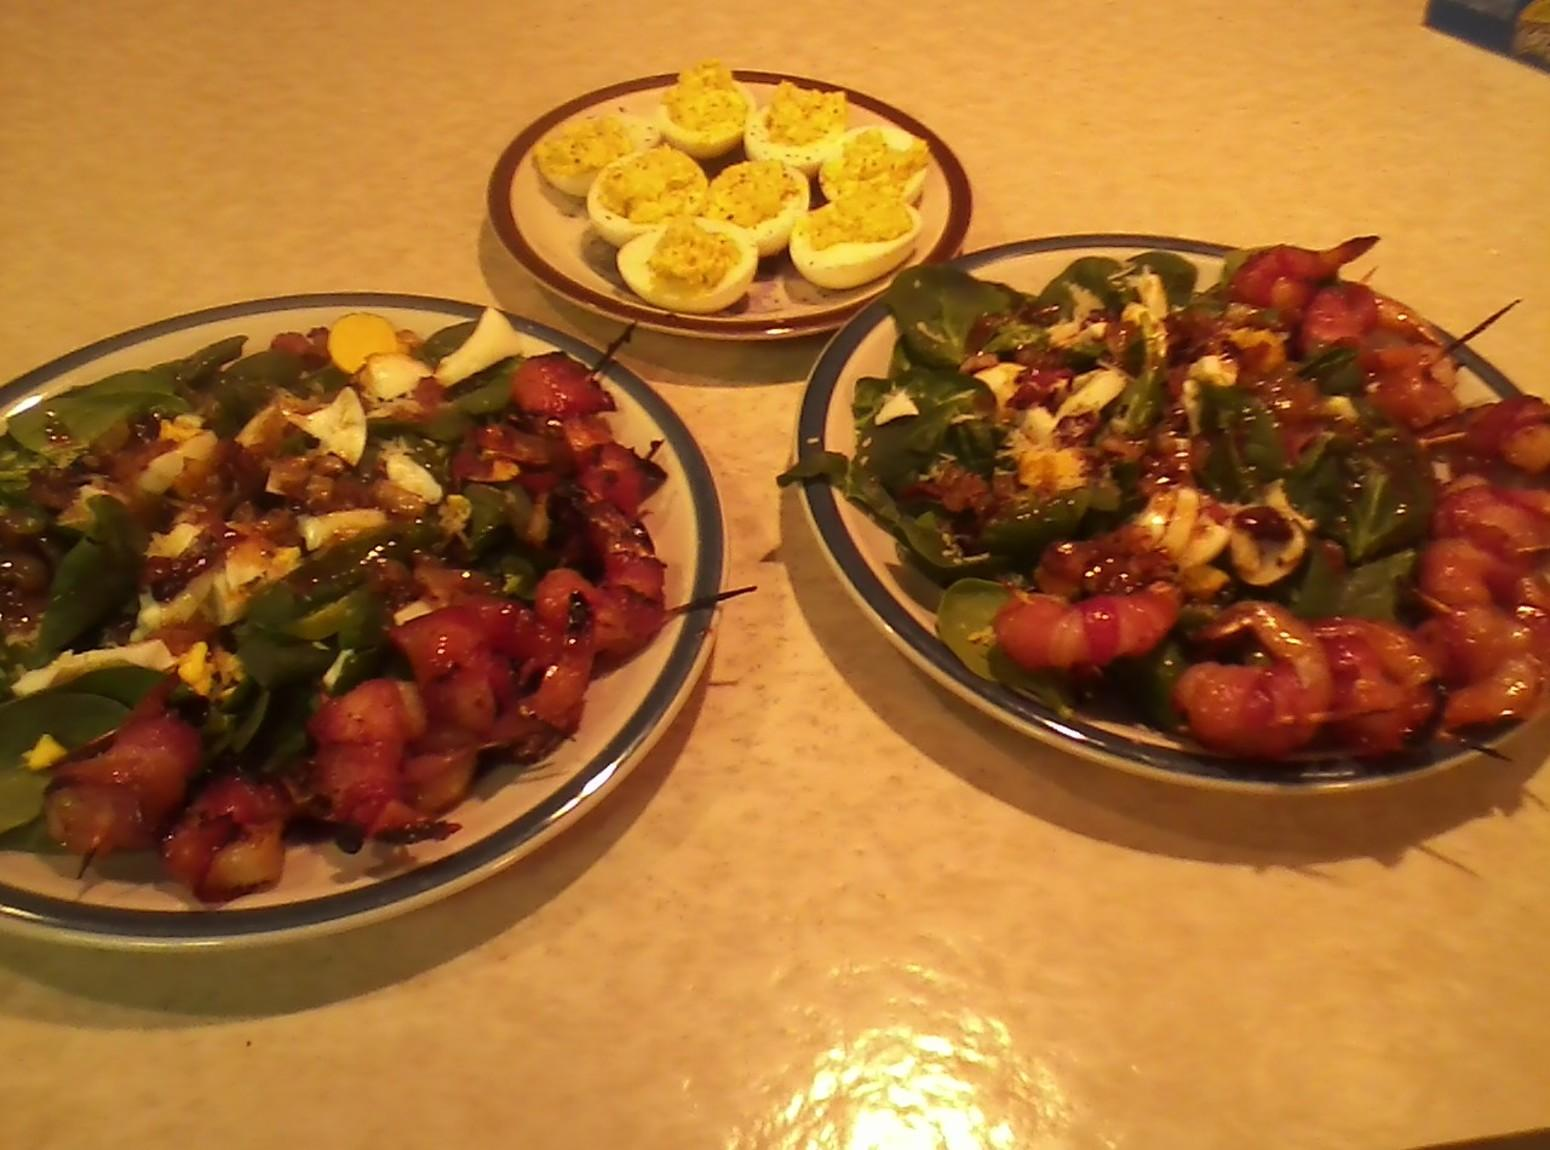 Spinach salad and grilled bacon wrapped shrimp Recipe